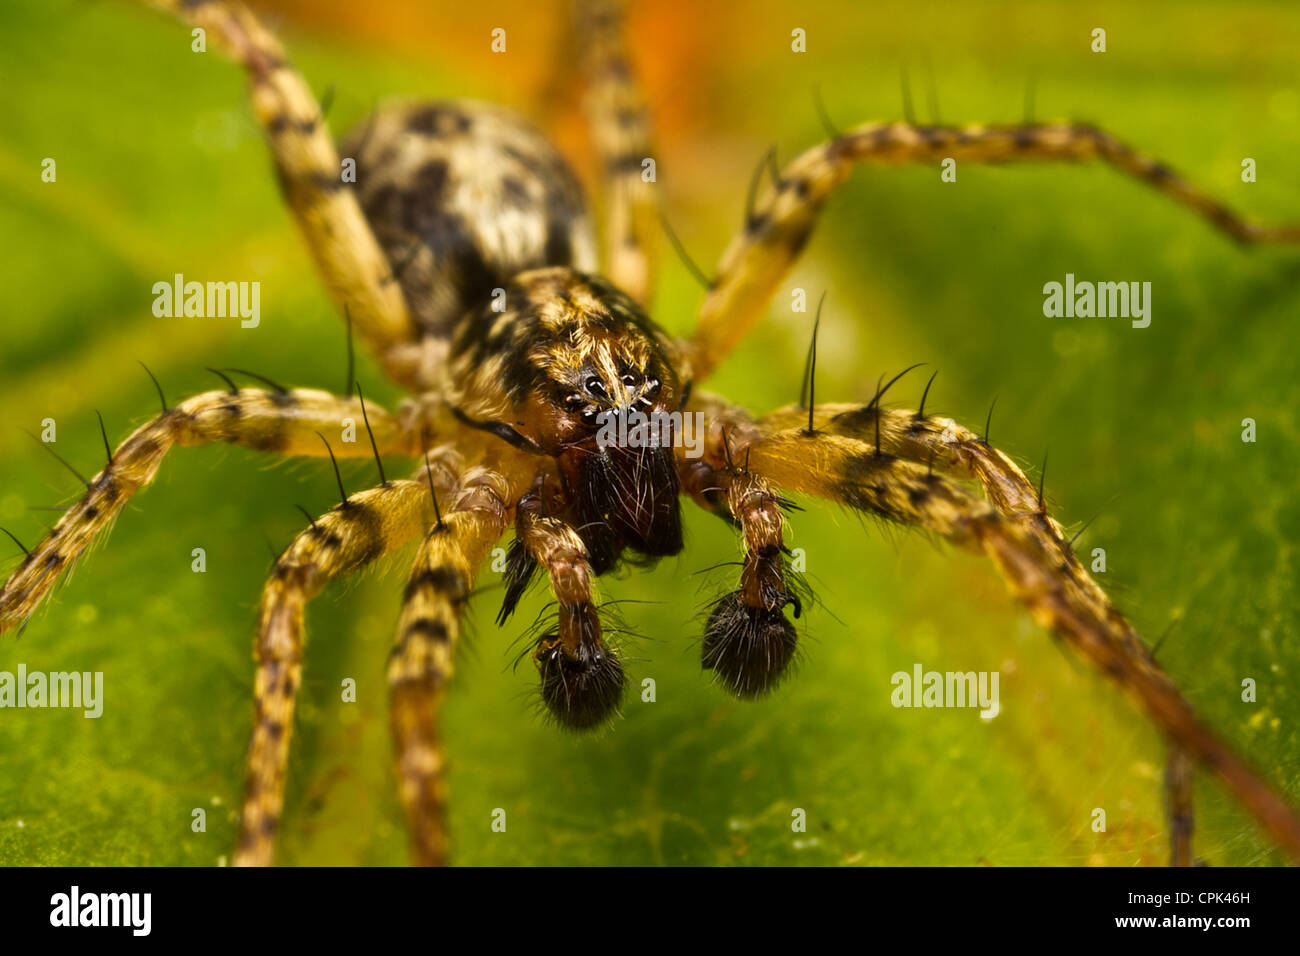 A small spider Stock Photo